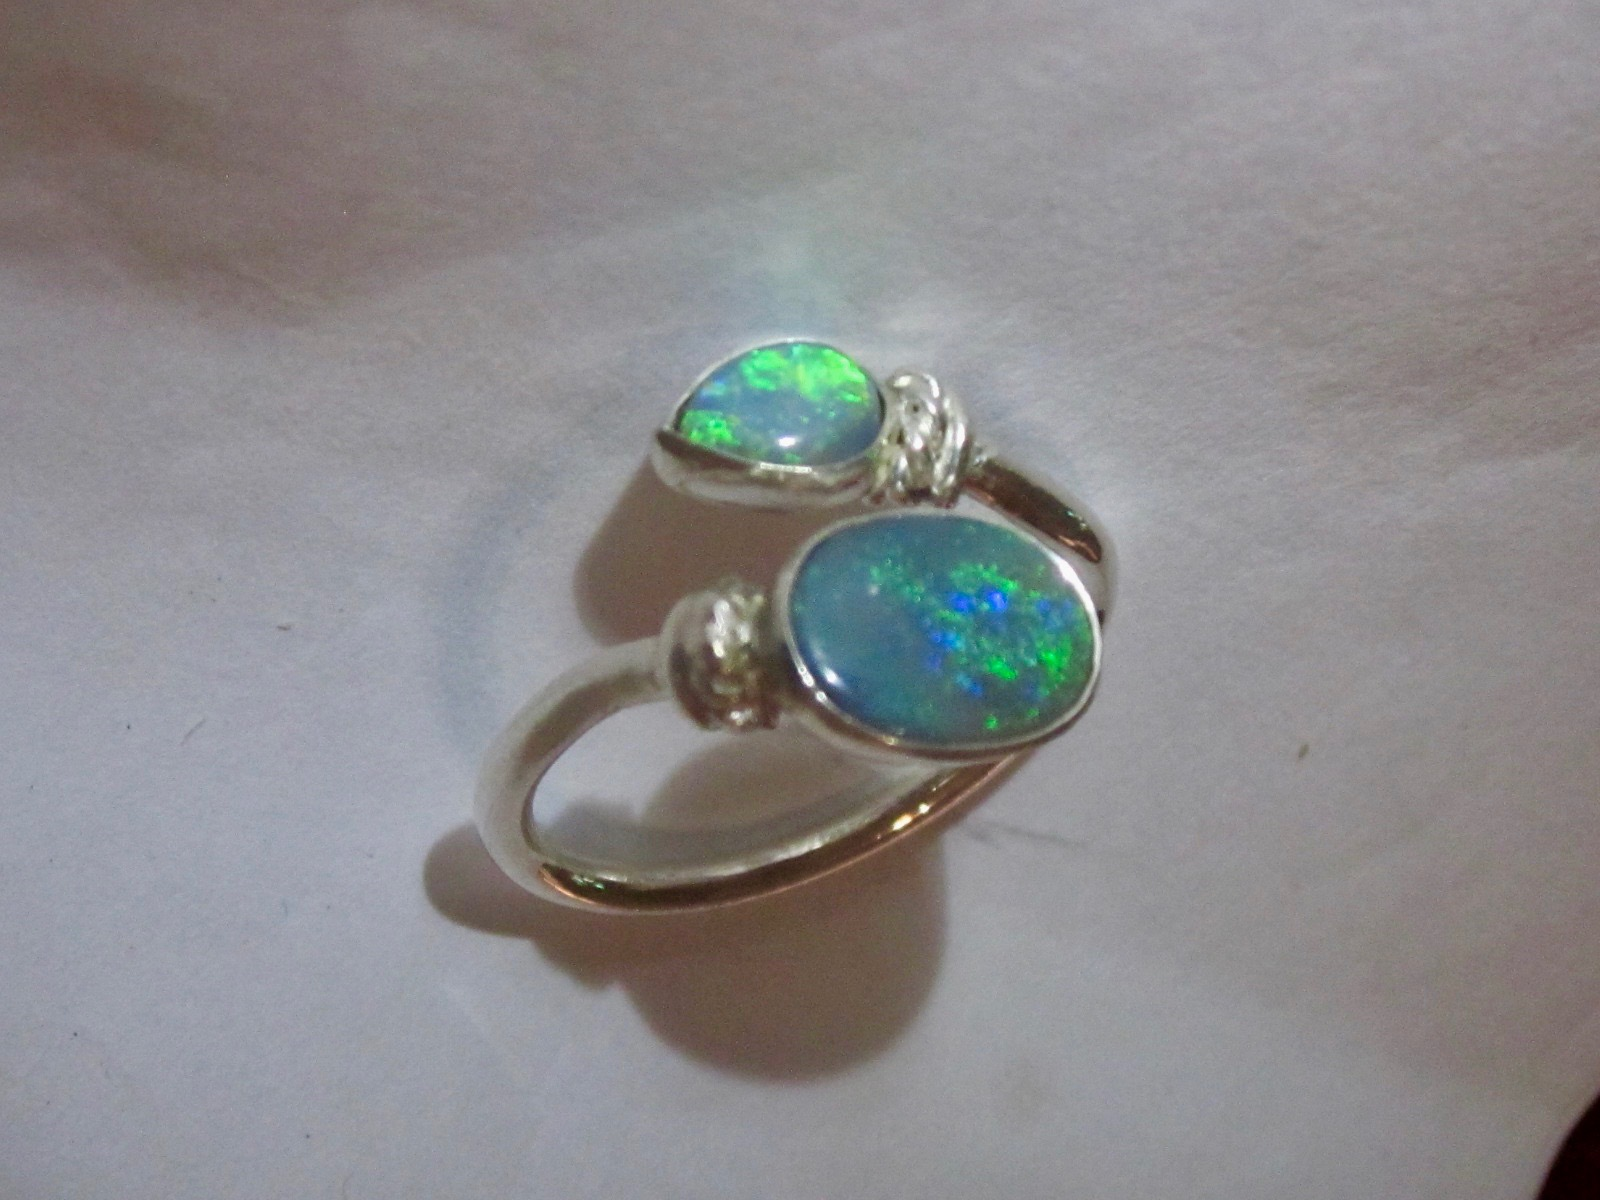 rings jewellery,opal rings, opal jewelry, october birthstone, opal ring, rings, october rings